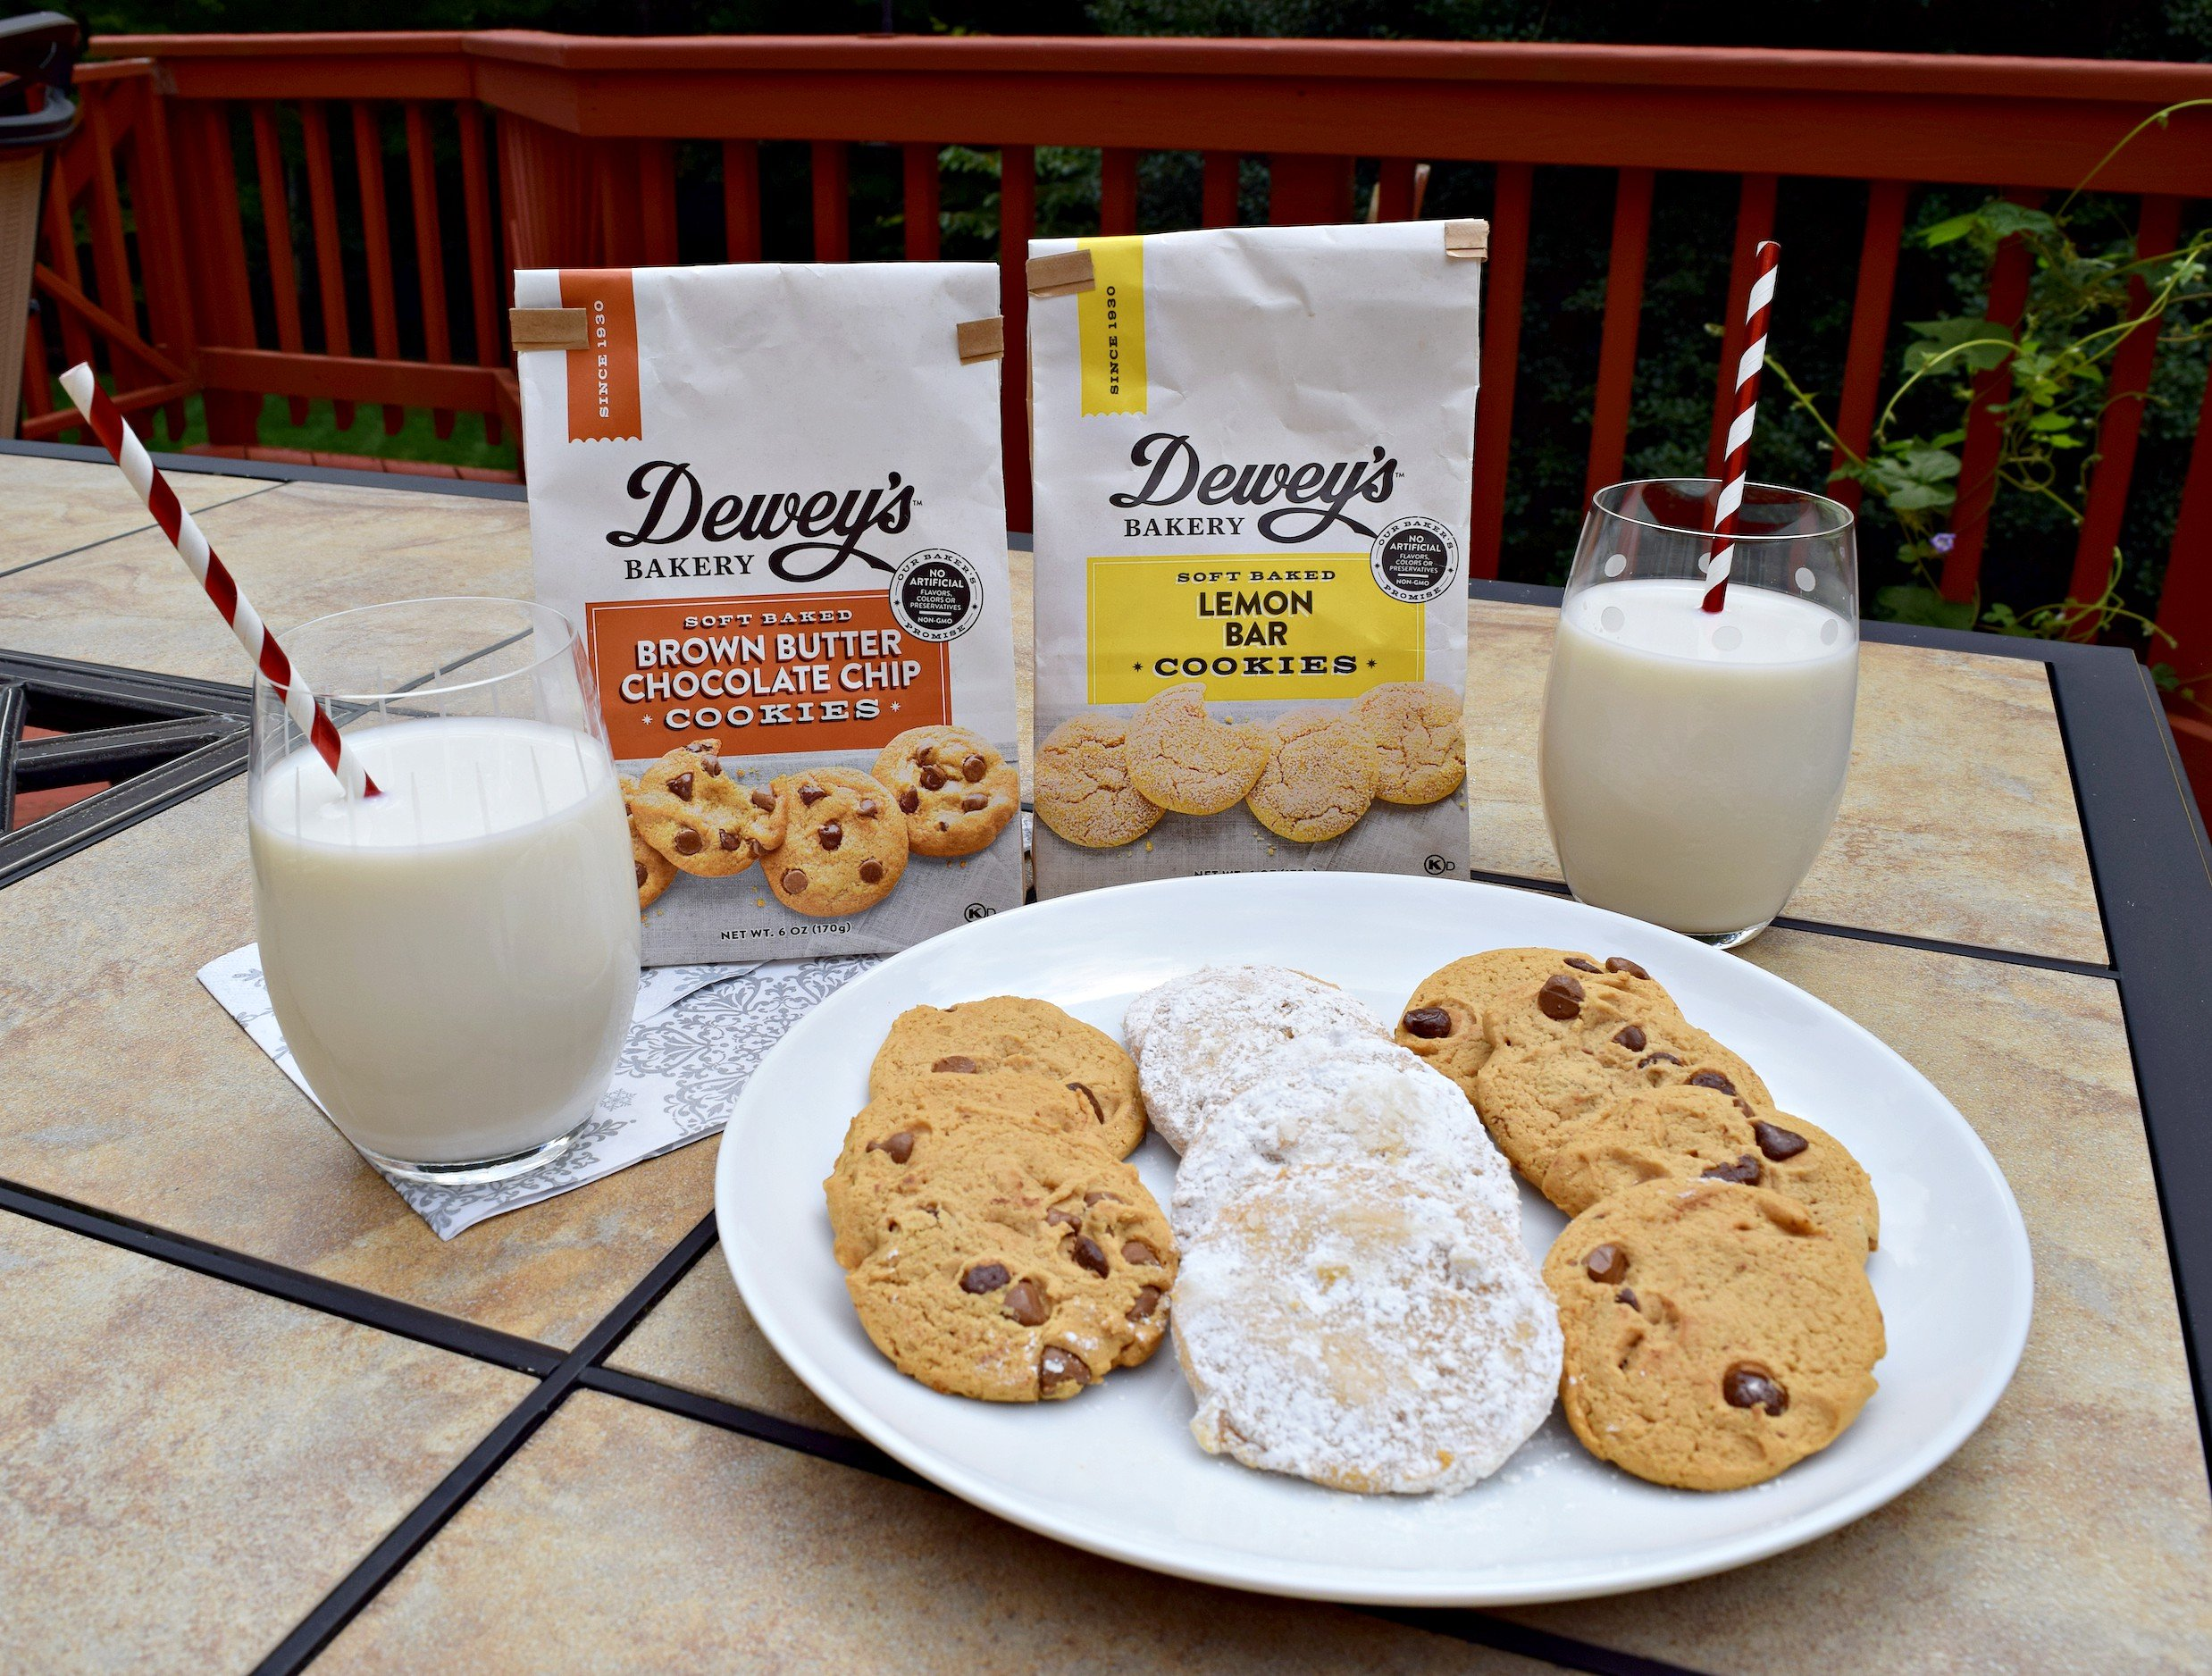 It's okay to indulge once in a while and enjoy something sweet and decadent like these Dewey's Bakery Soft Baked Cookies!